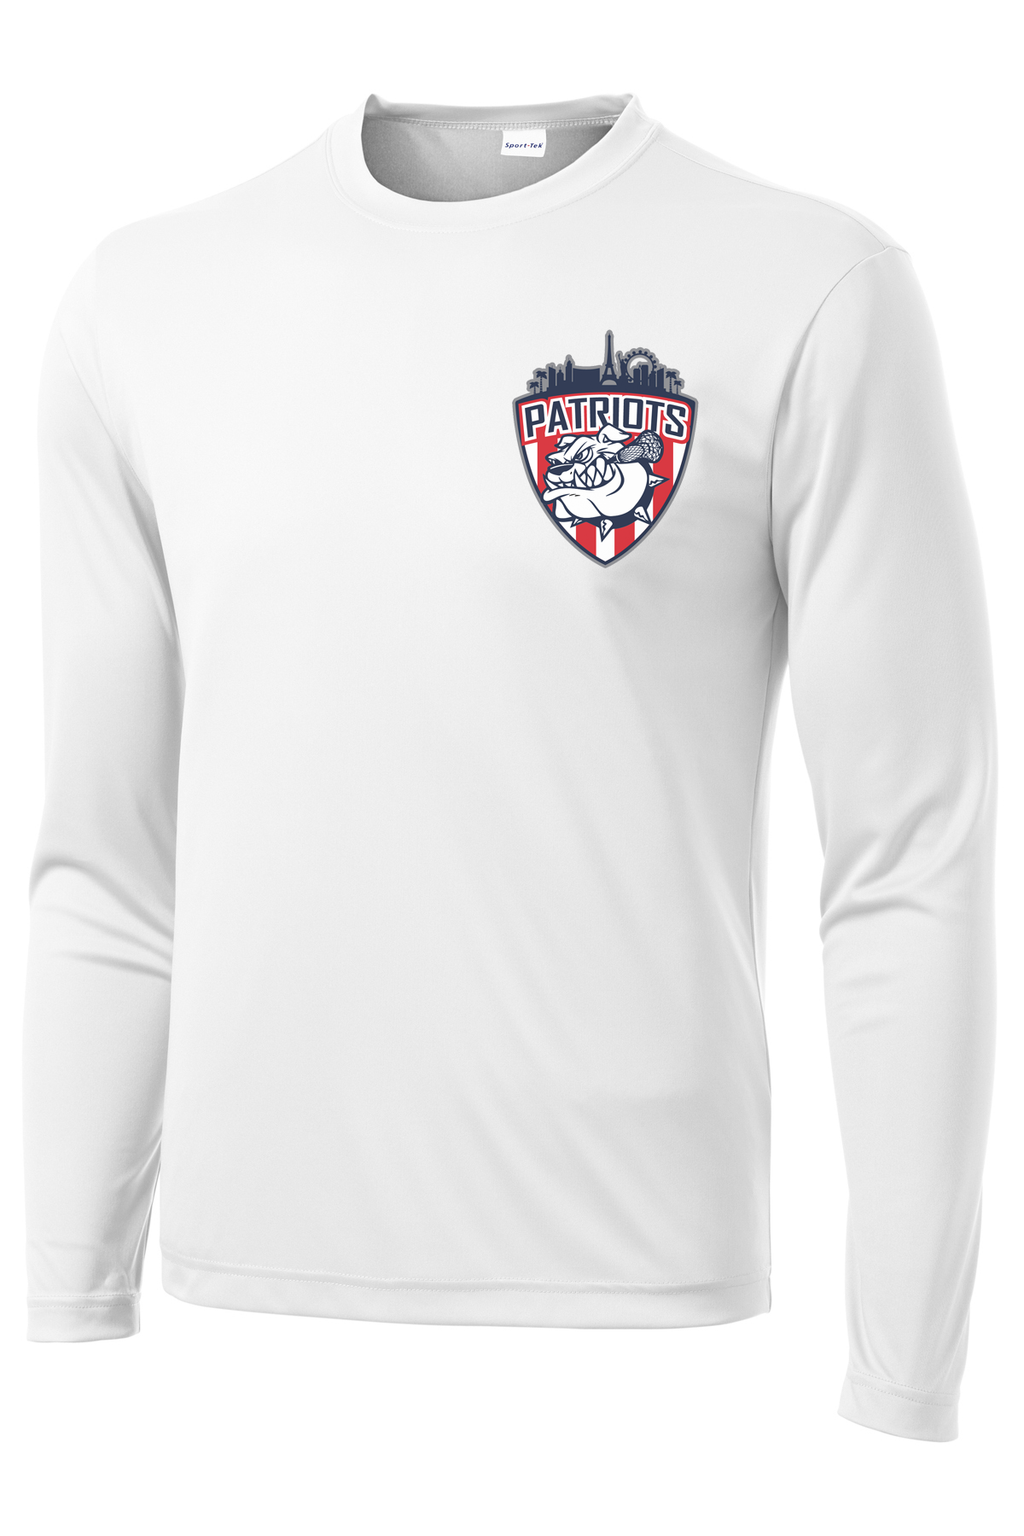 Las Vegas Patriots Long Sleeve Performance Shirt